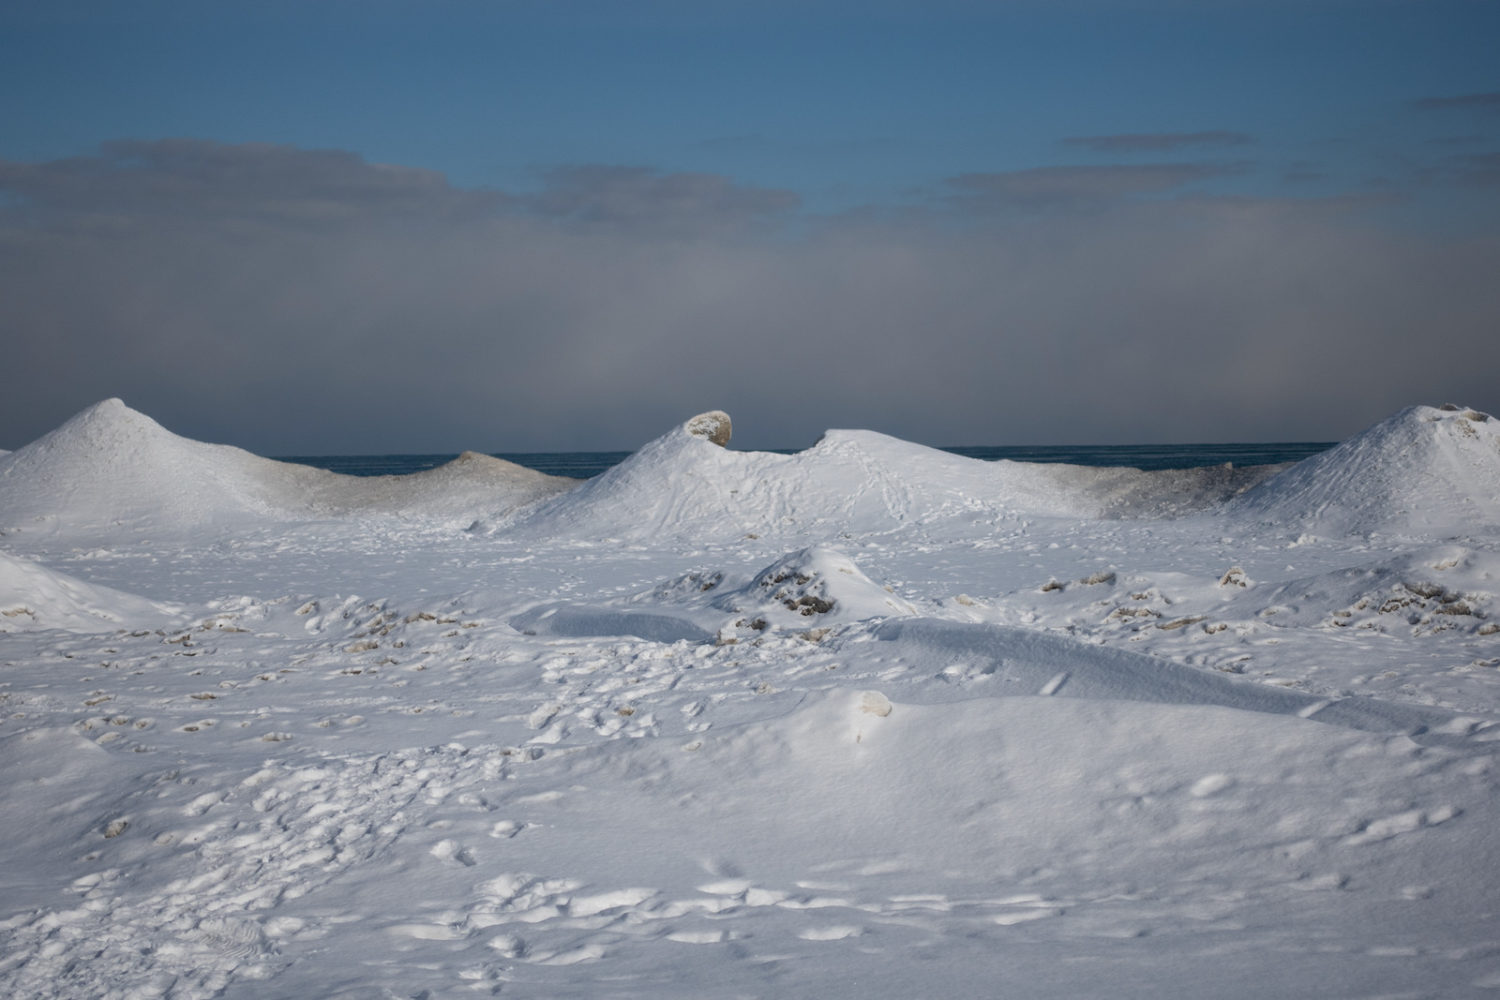 Lake Ontario shoreline with ice mounds in February